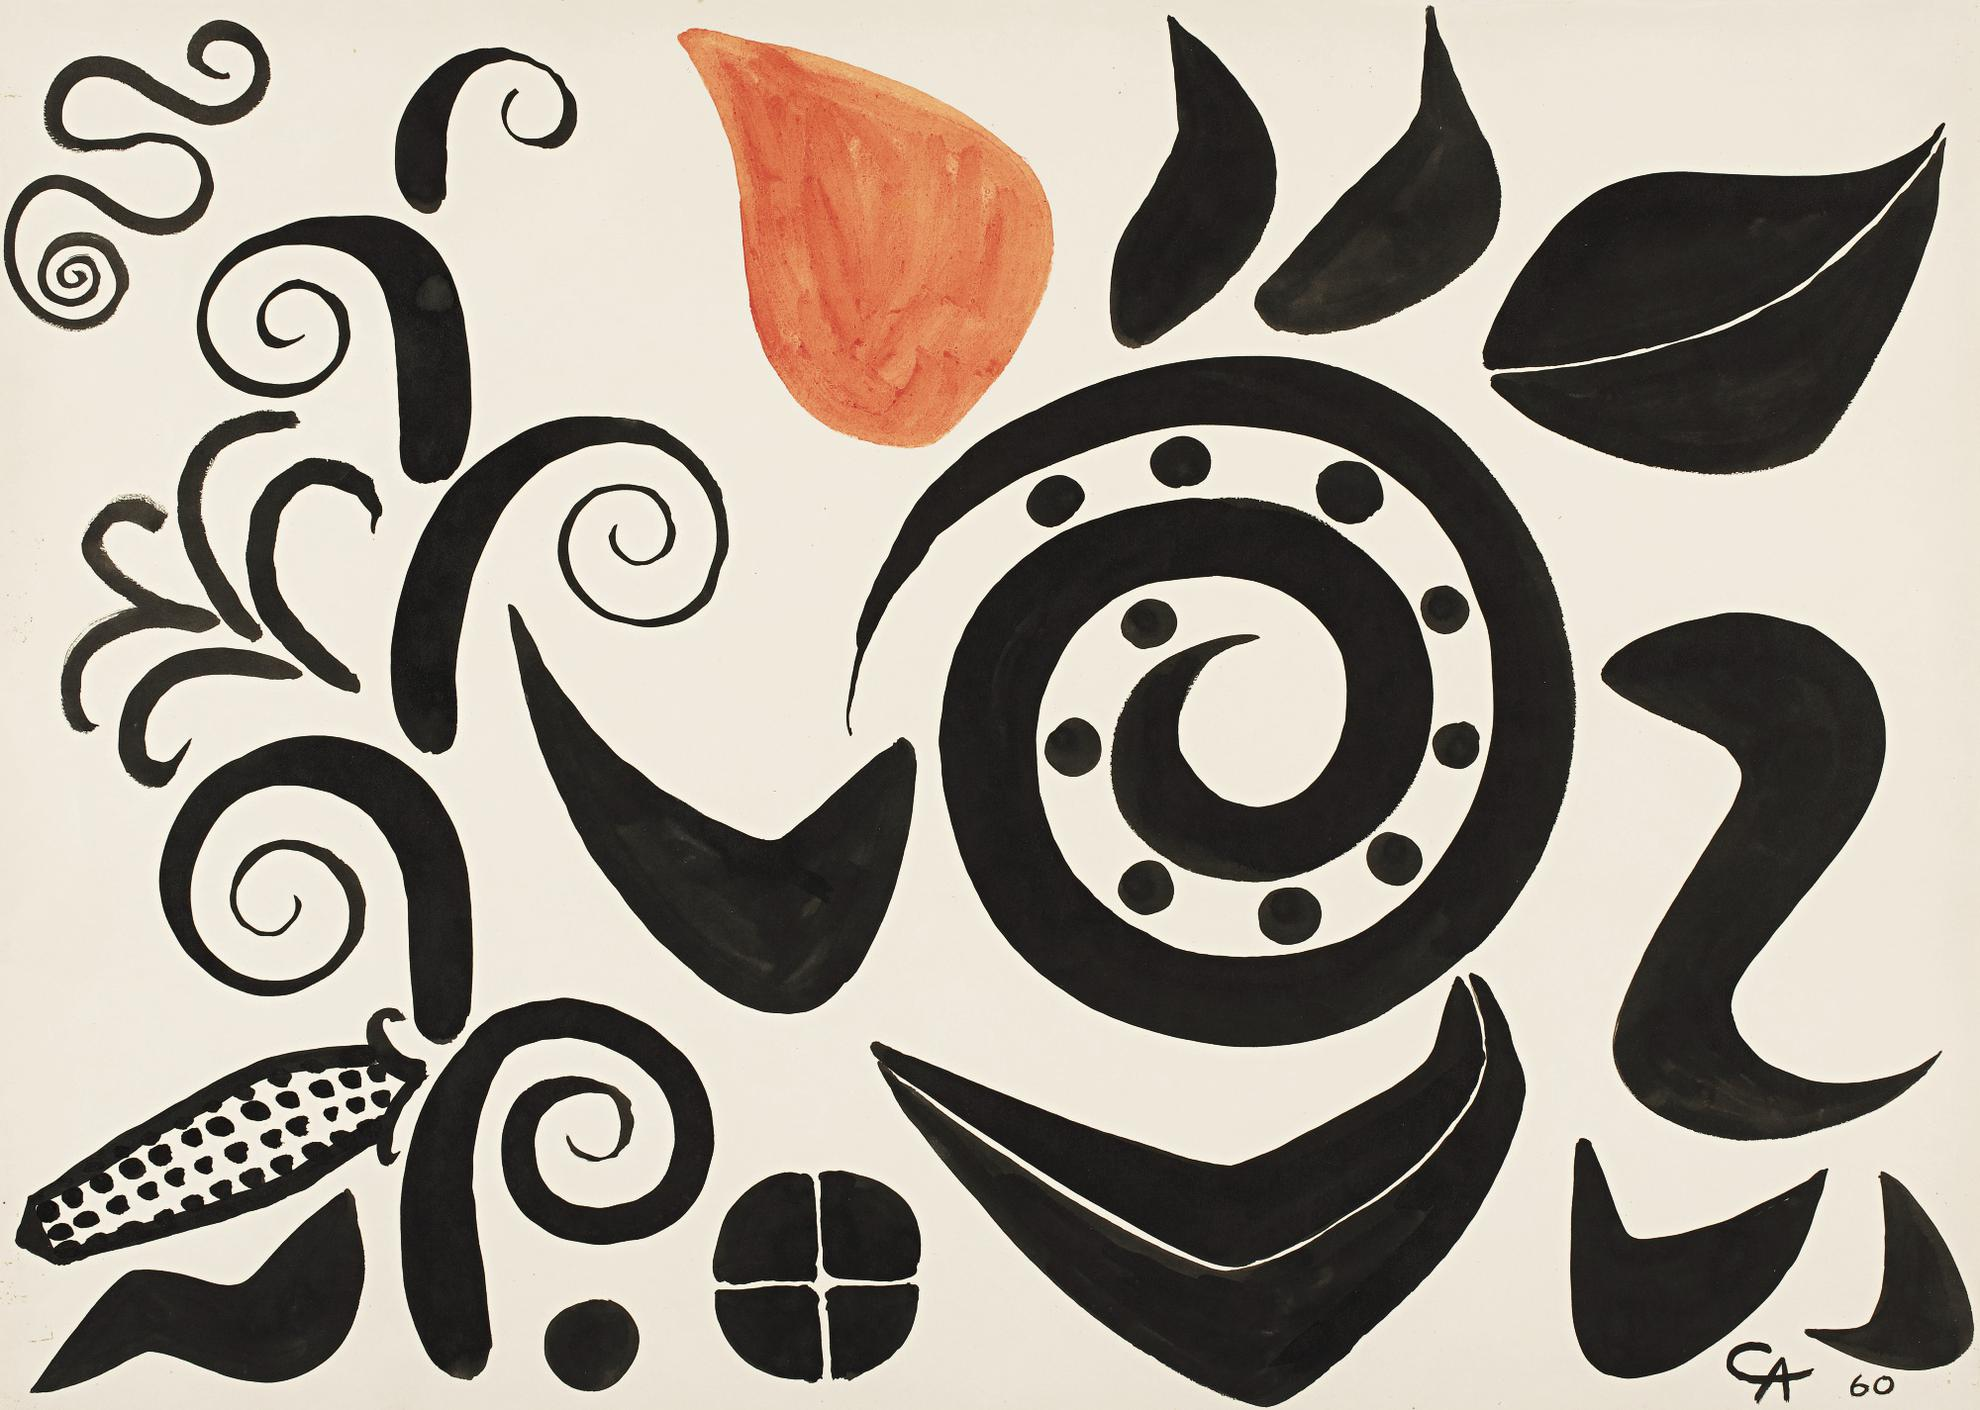 Alexander Calder-Corn On The Cob-1960